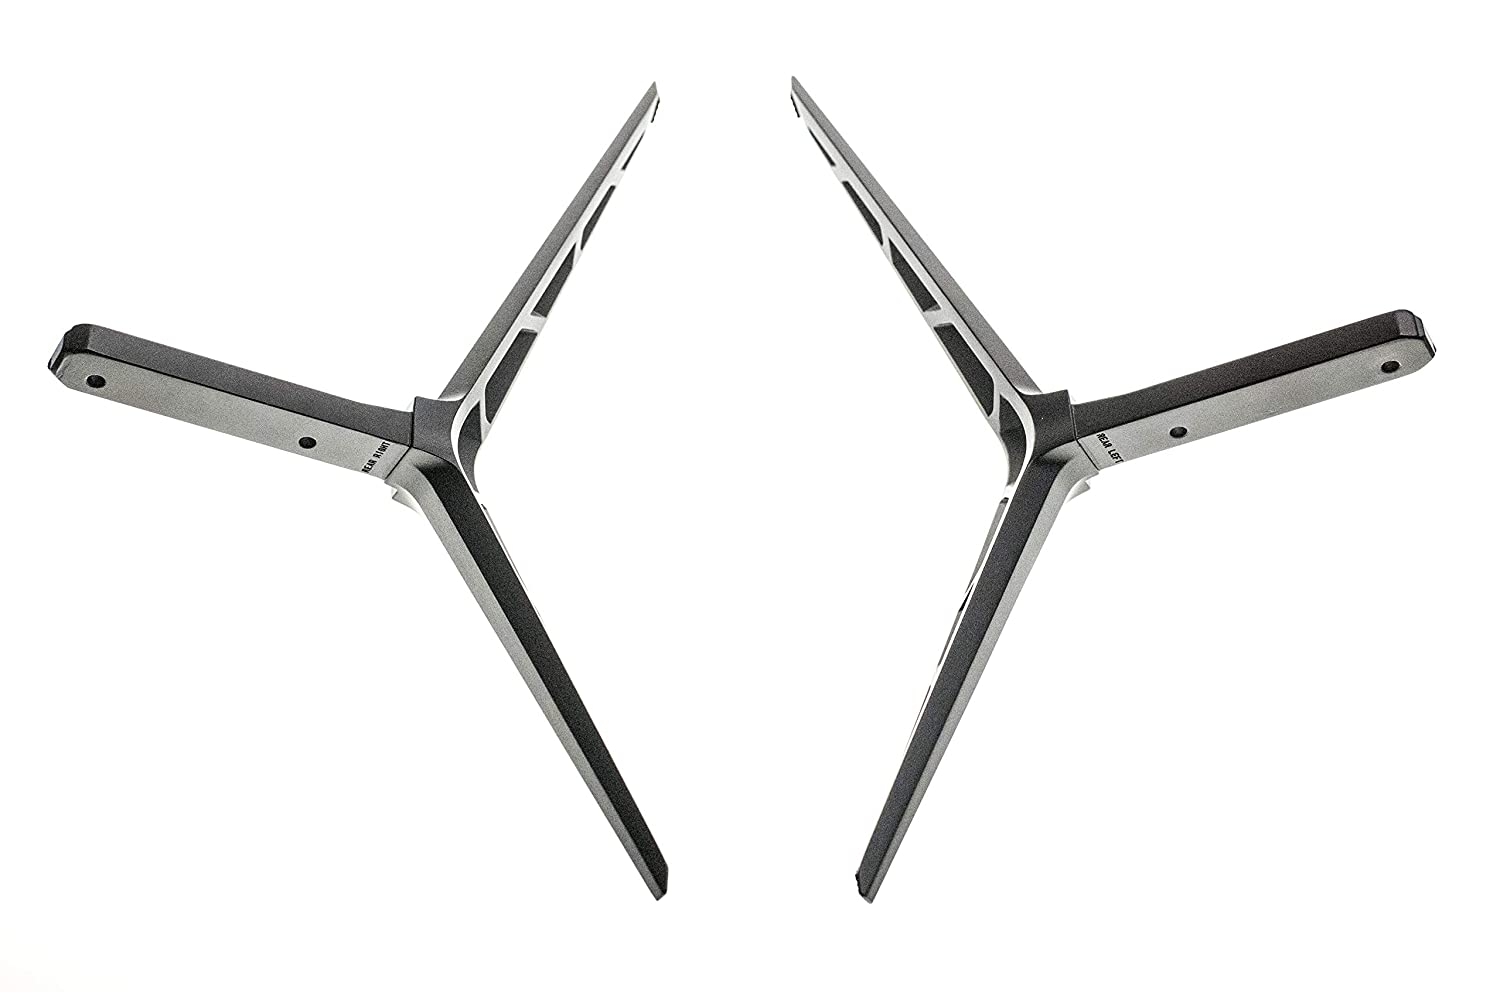 TEKBYUS V655-G9 Stand Legs Complete with Screws